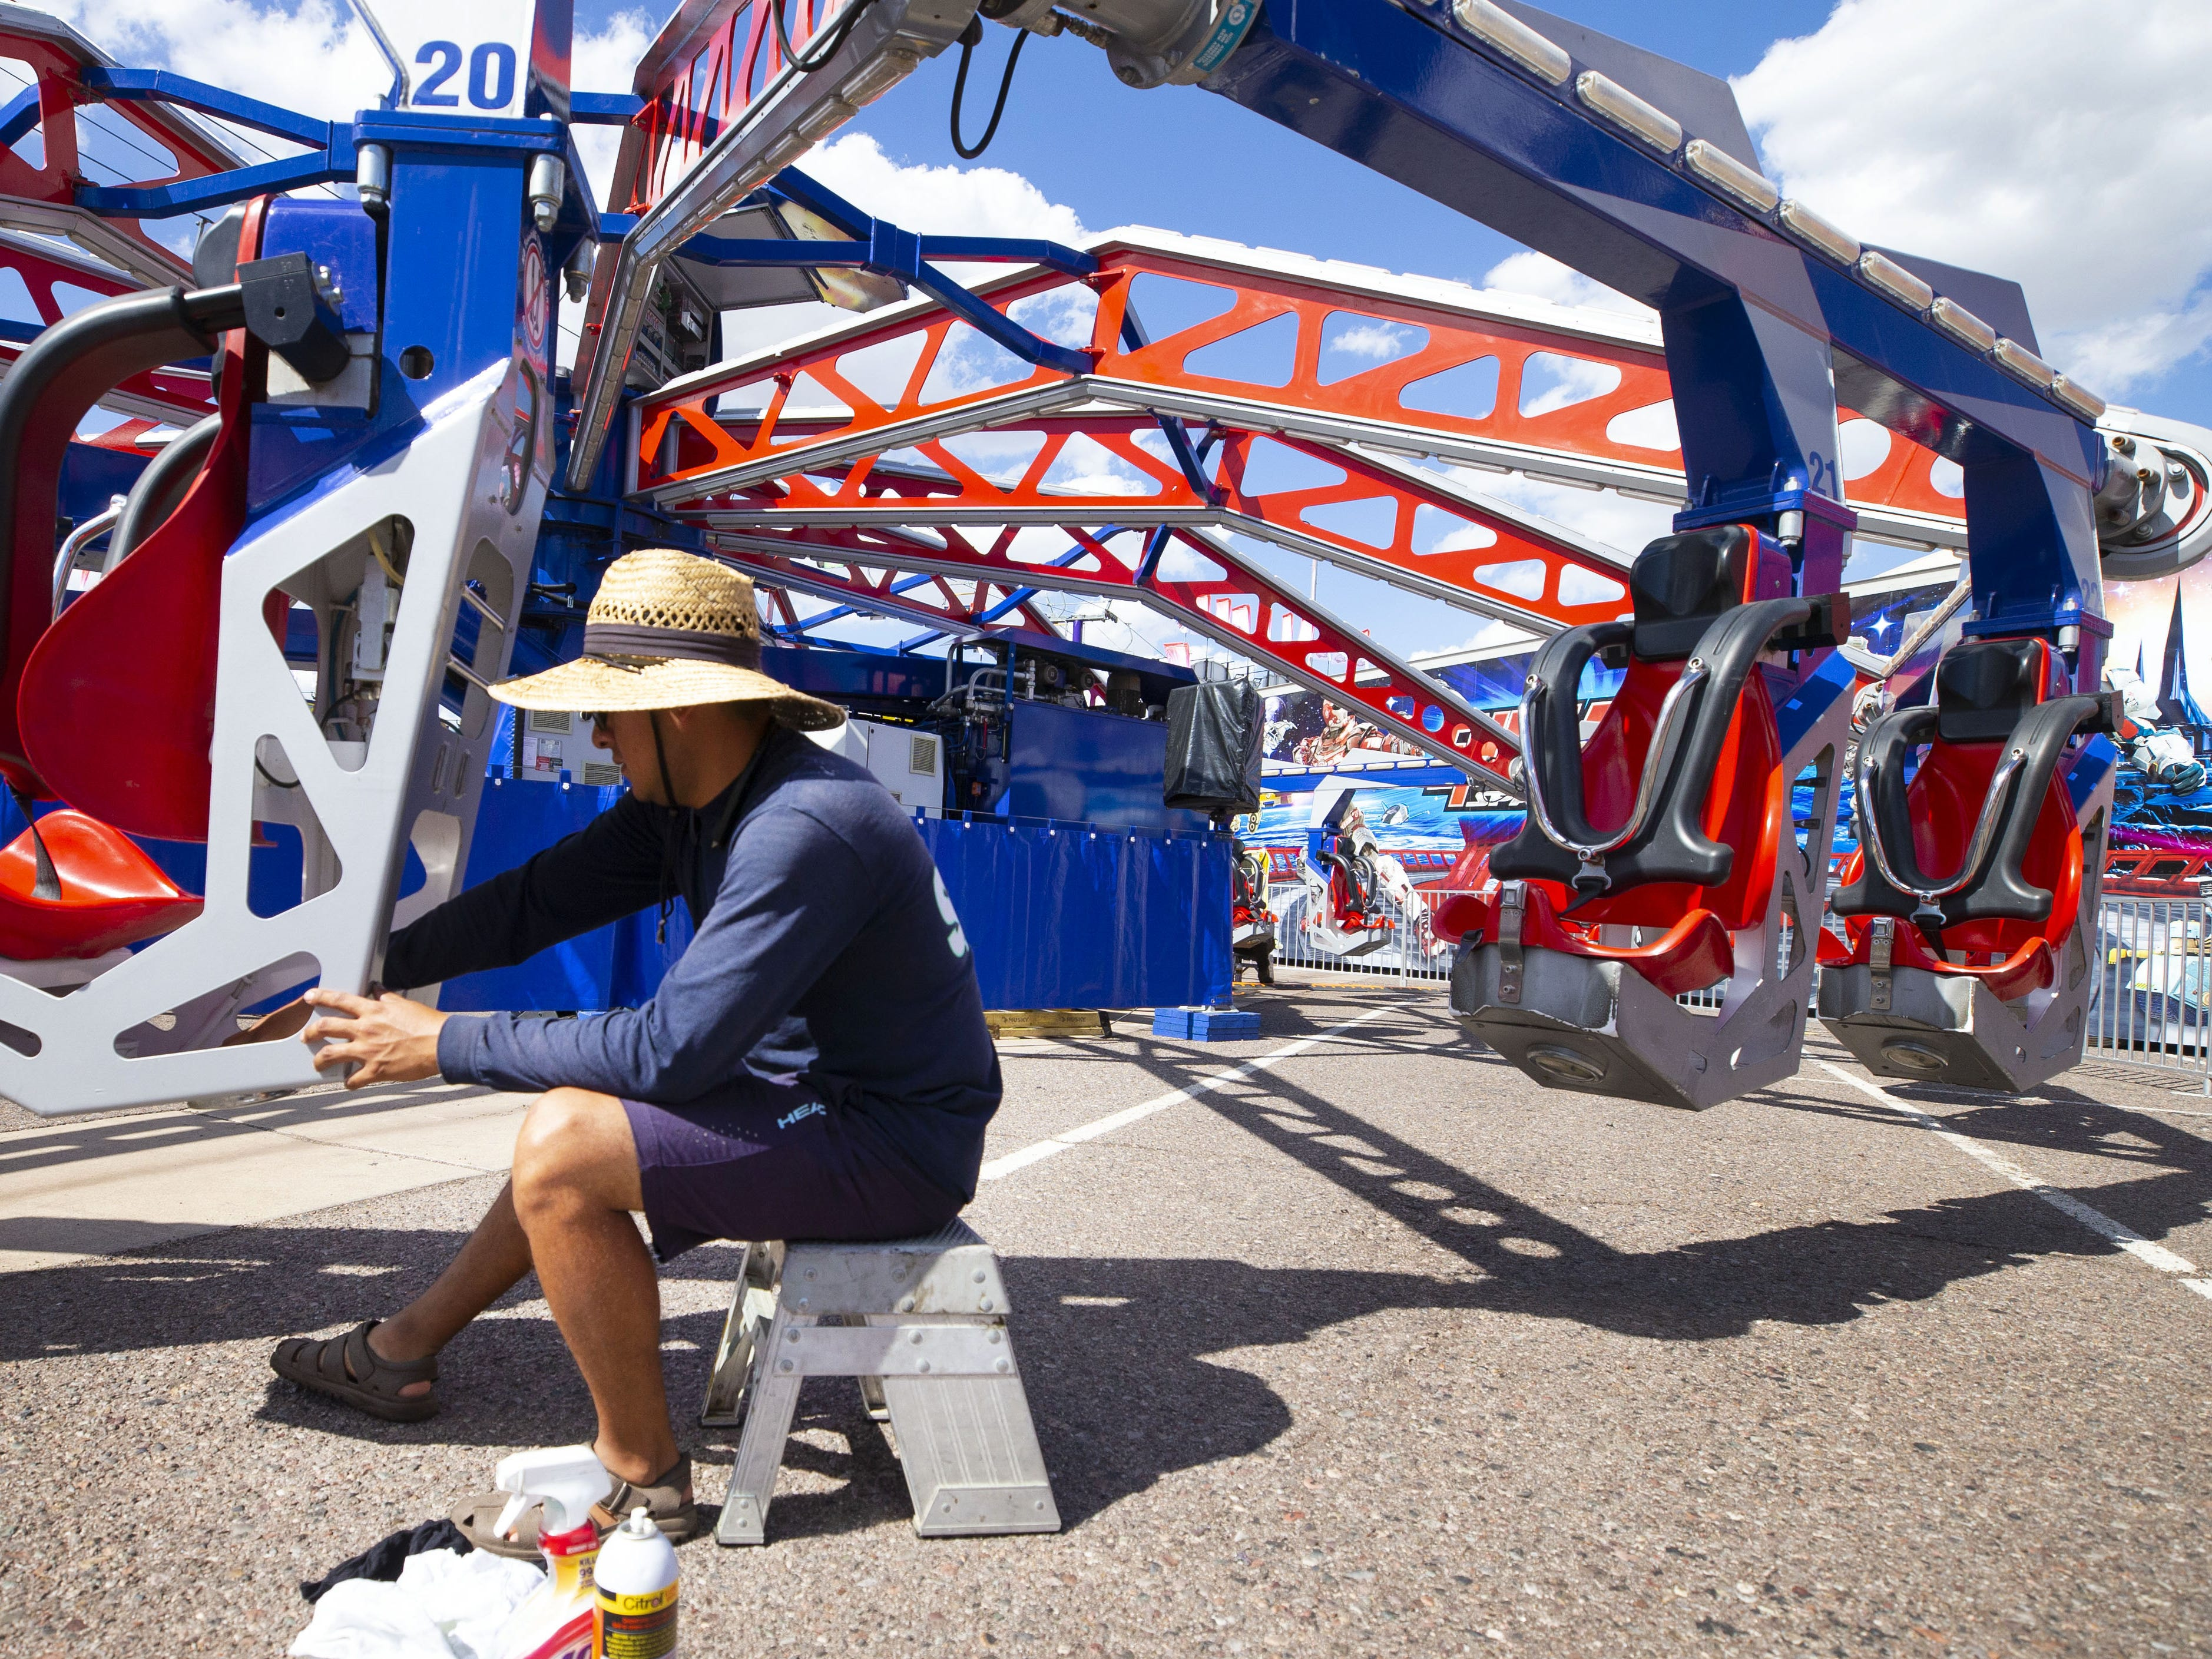 Jonathan Torres cleans the ride Endeavor at the Arizona State Fair in Phoenix on October 4, 2018. The Fair's opening day is Friday, October 5.